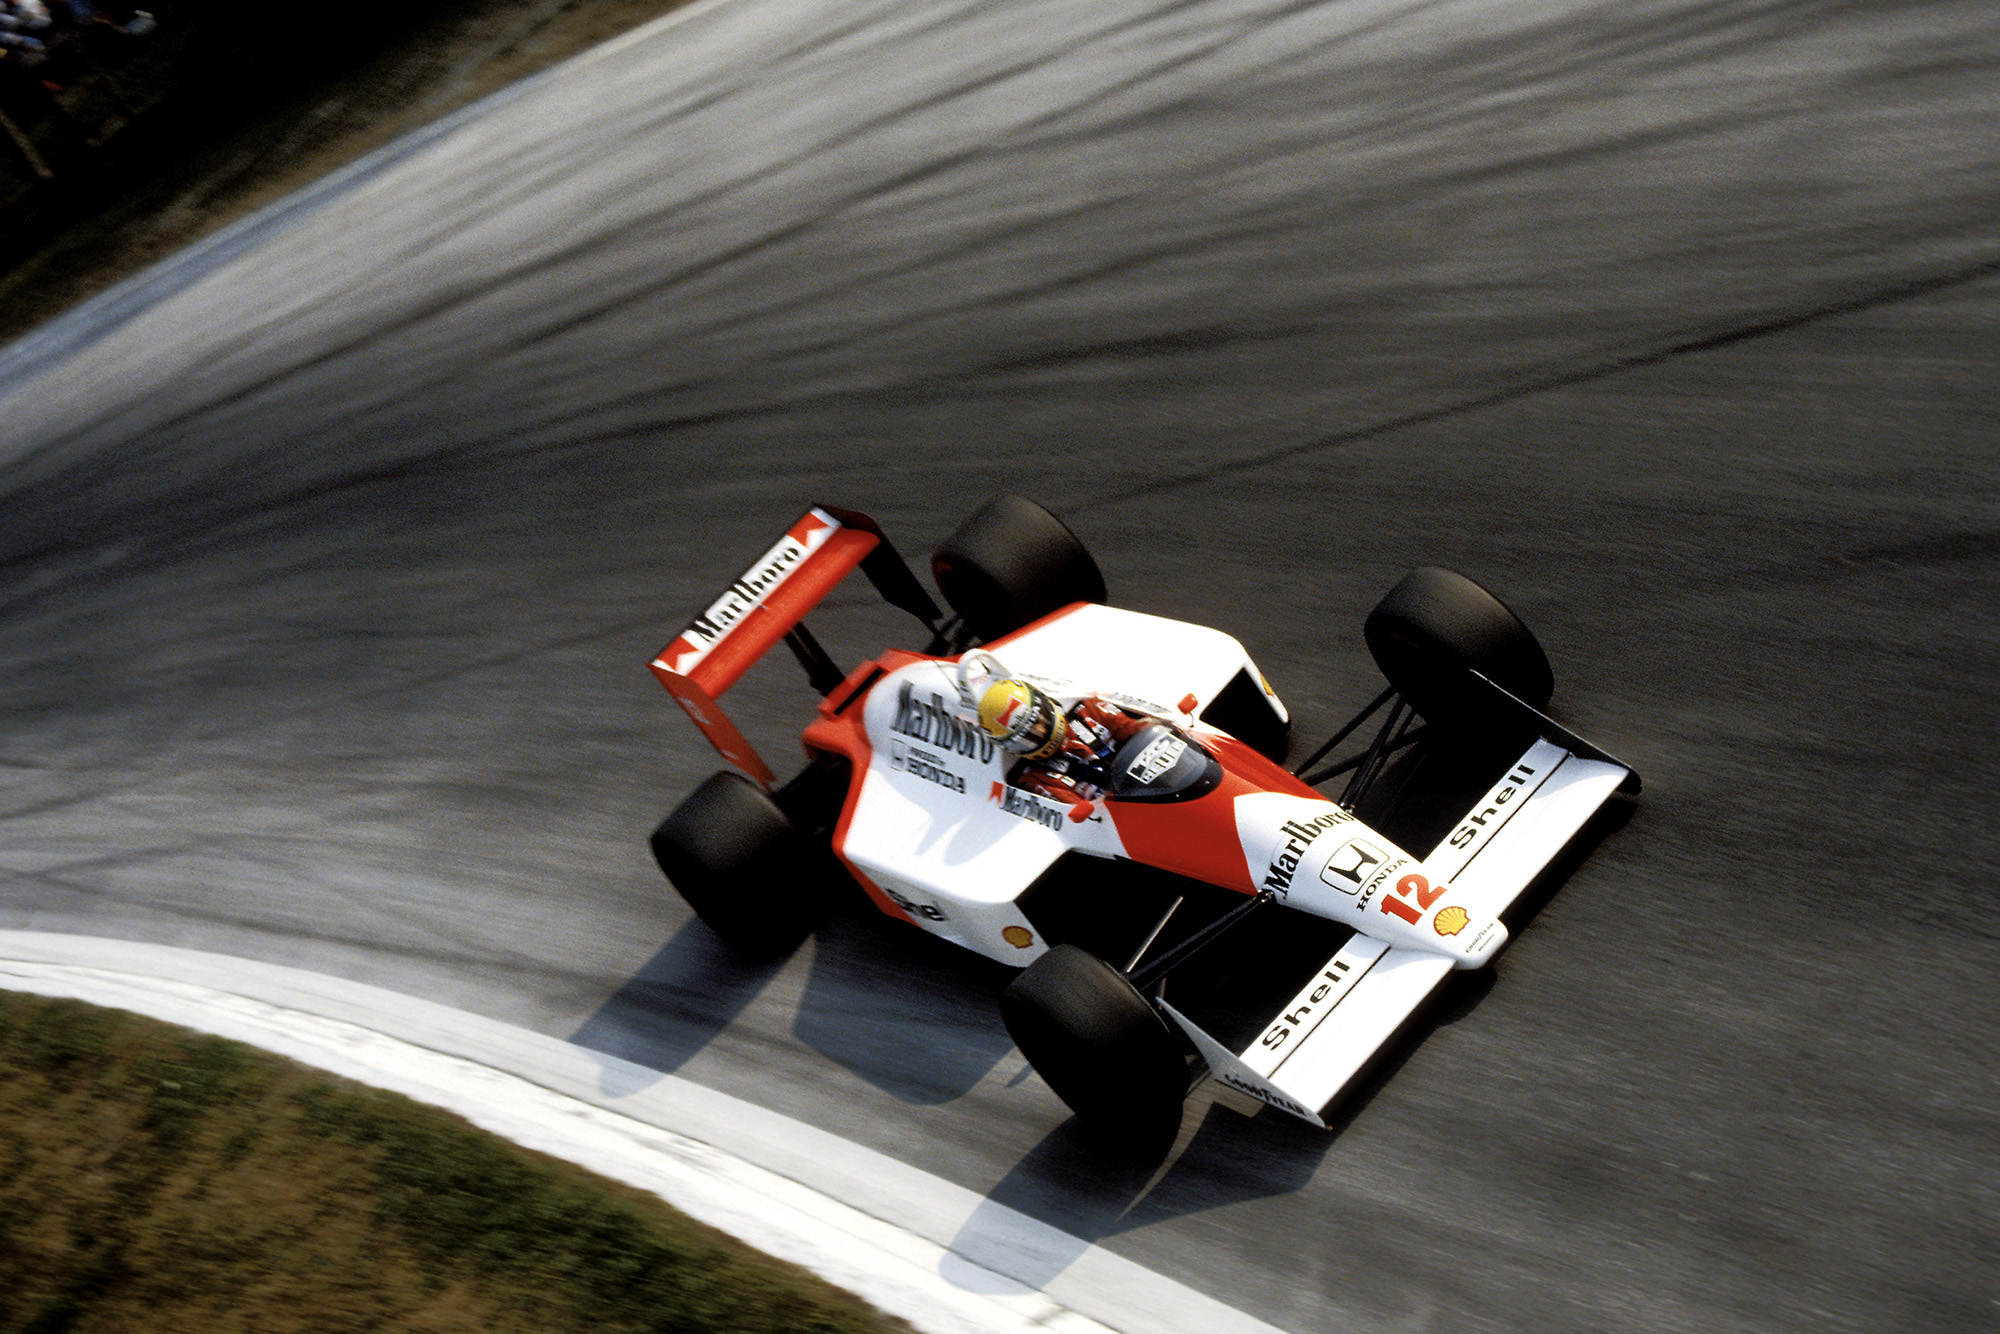 Ayrton Senna in the McLaren Honda at the 1988 Italian Grand Prix